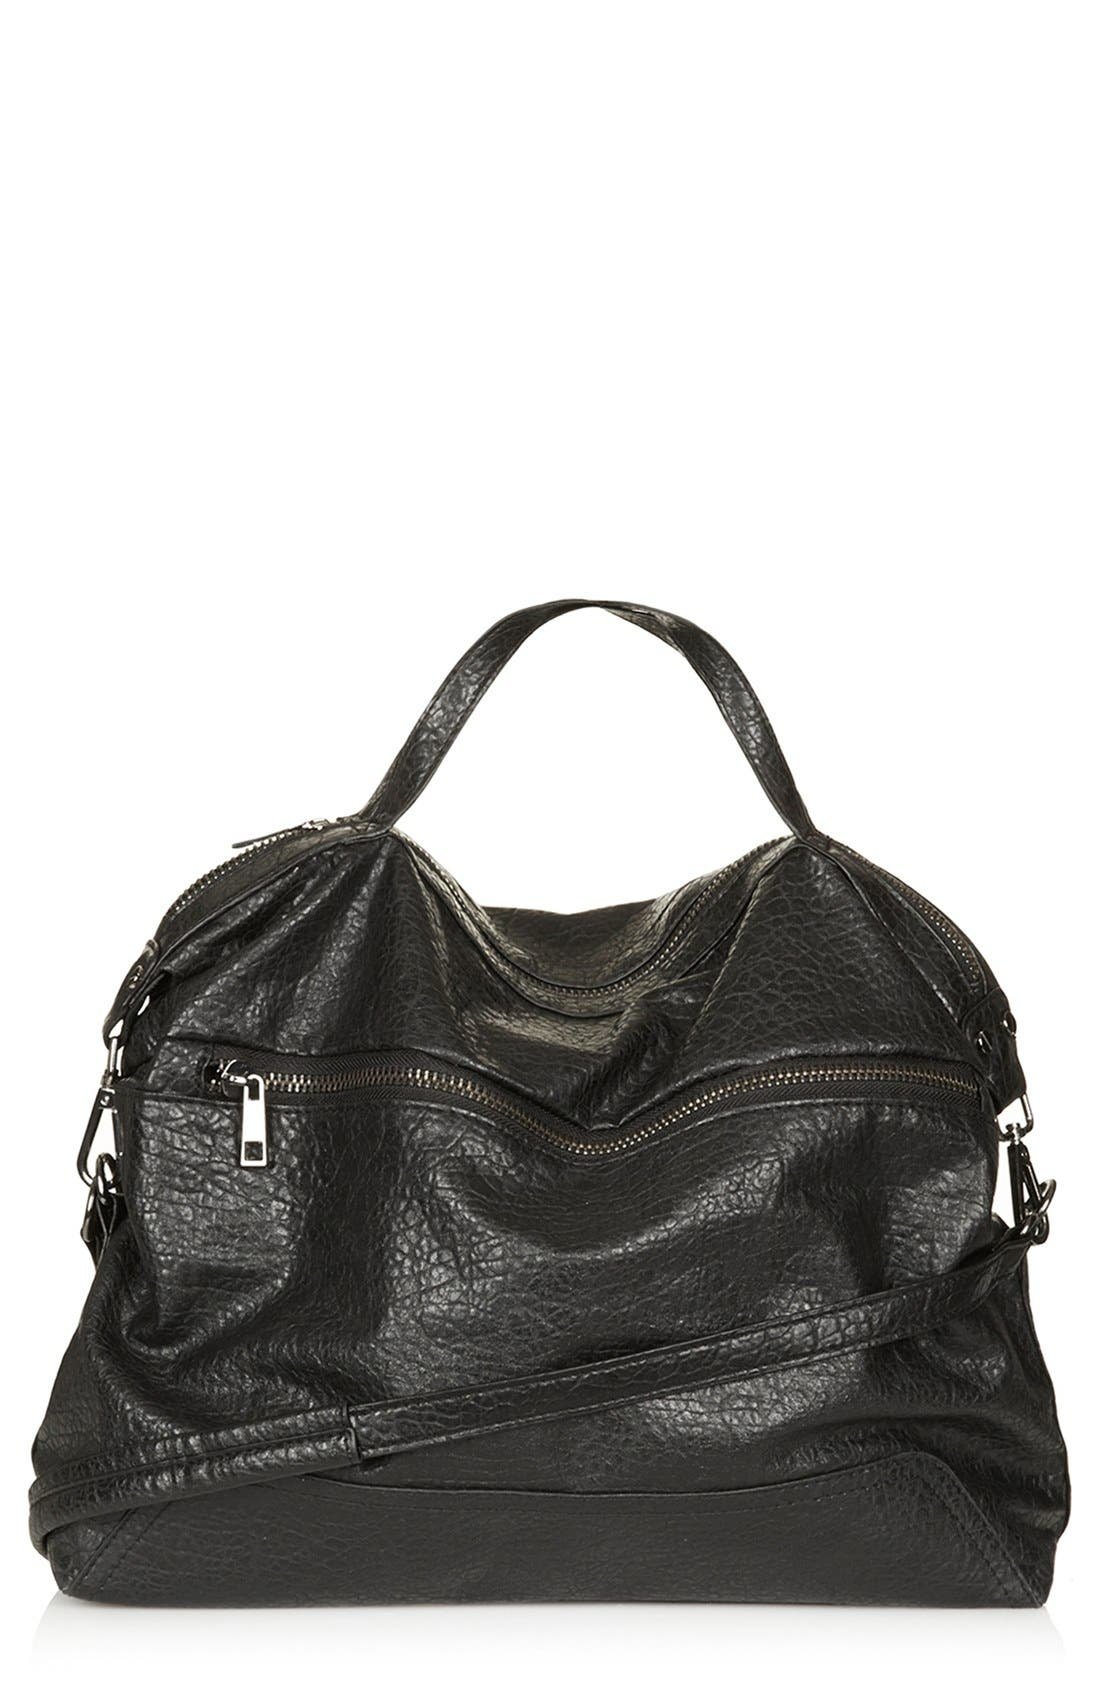 Main Image - Topshop Faux Leather Satchel